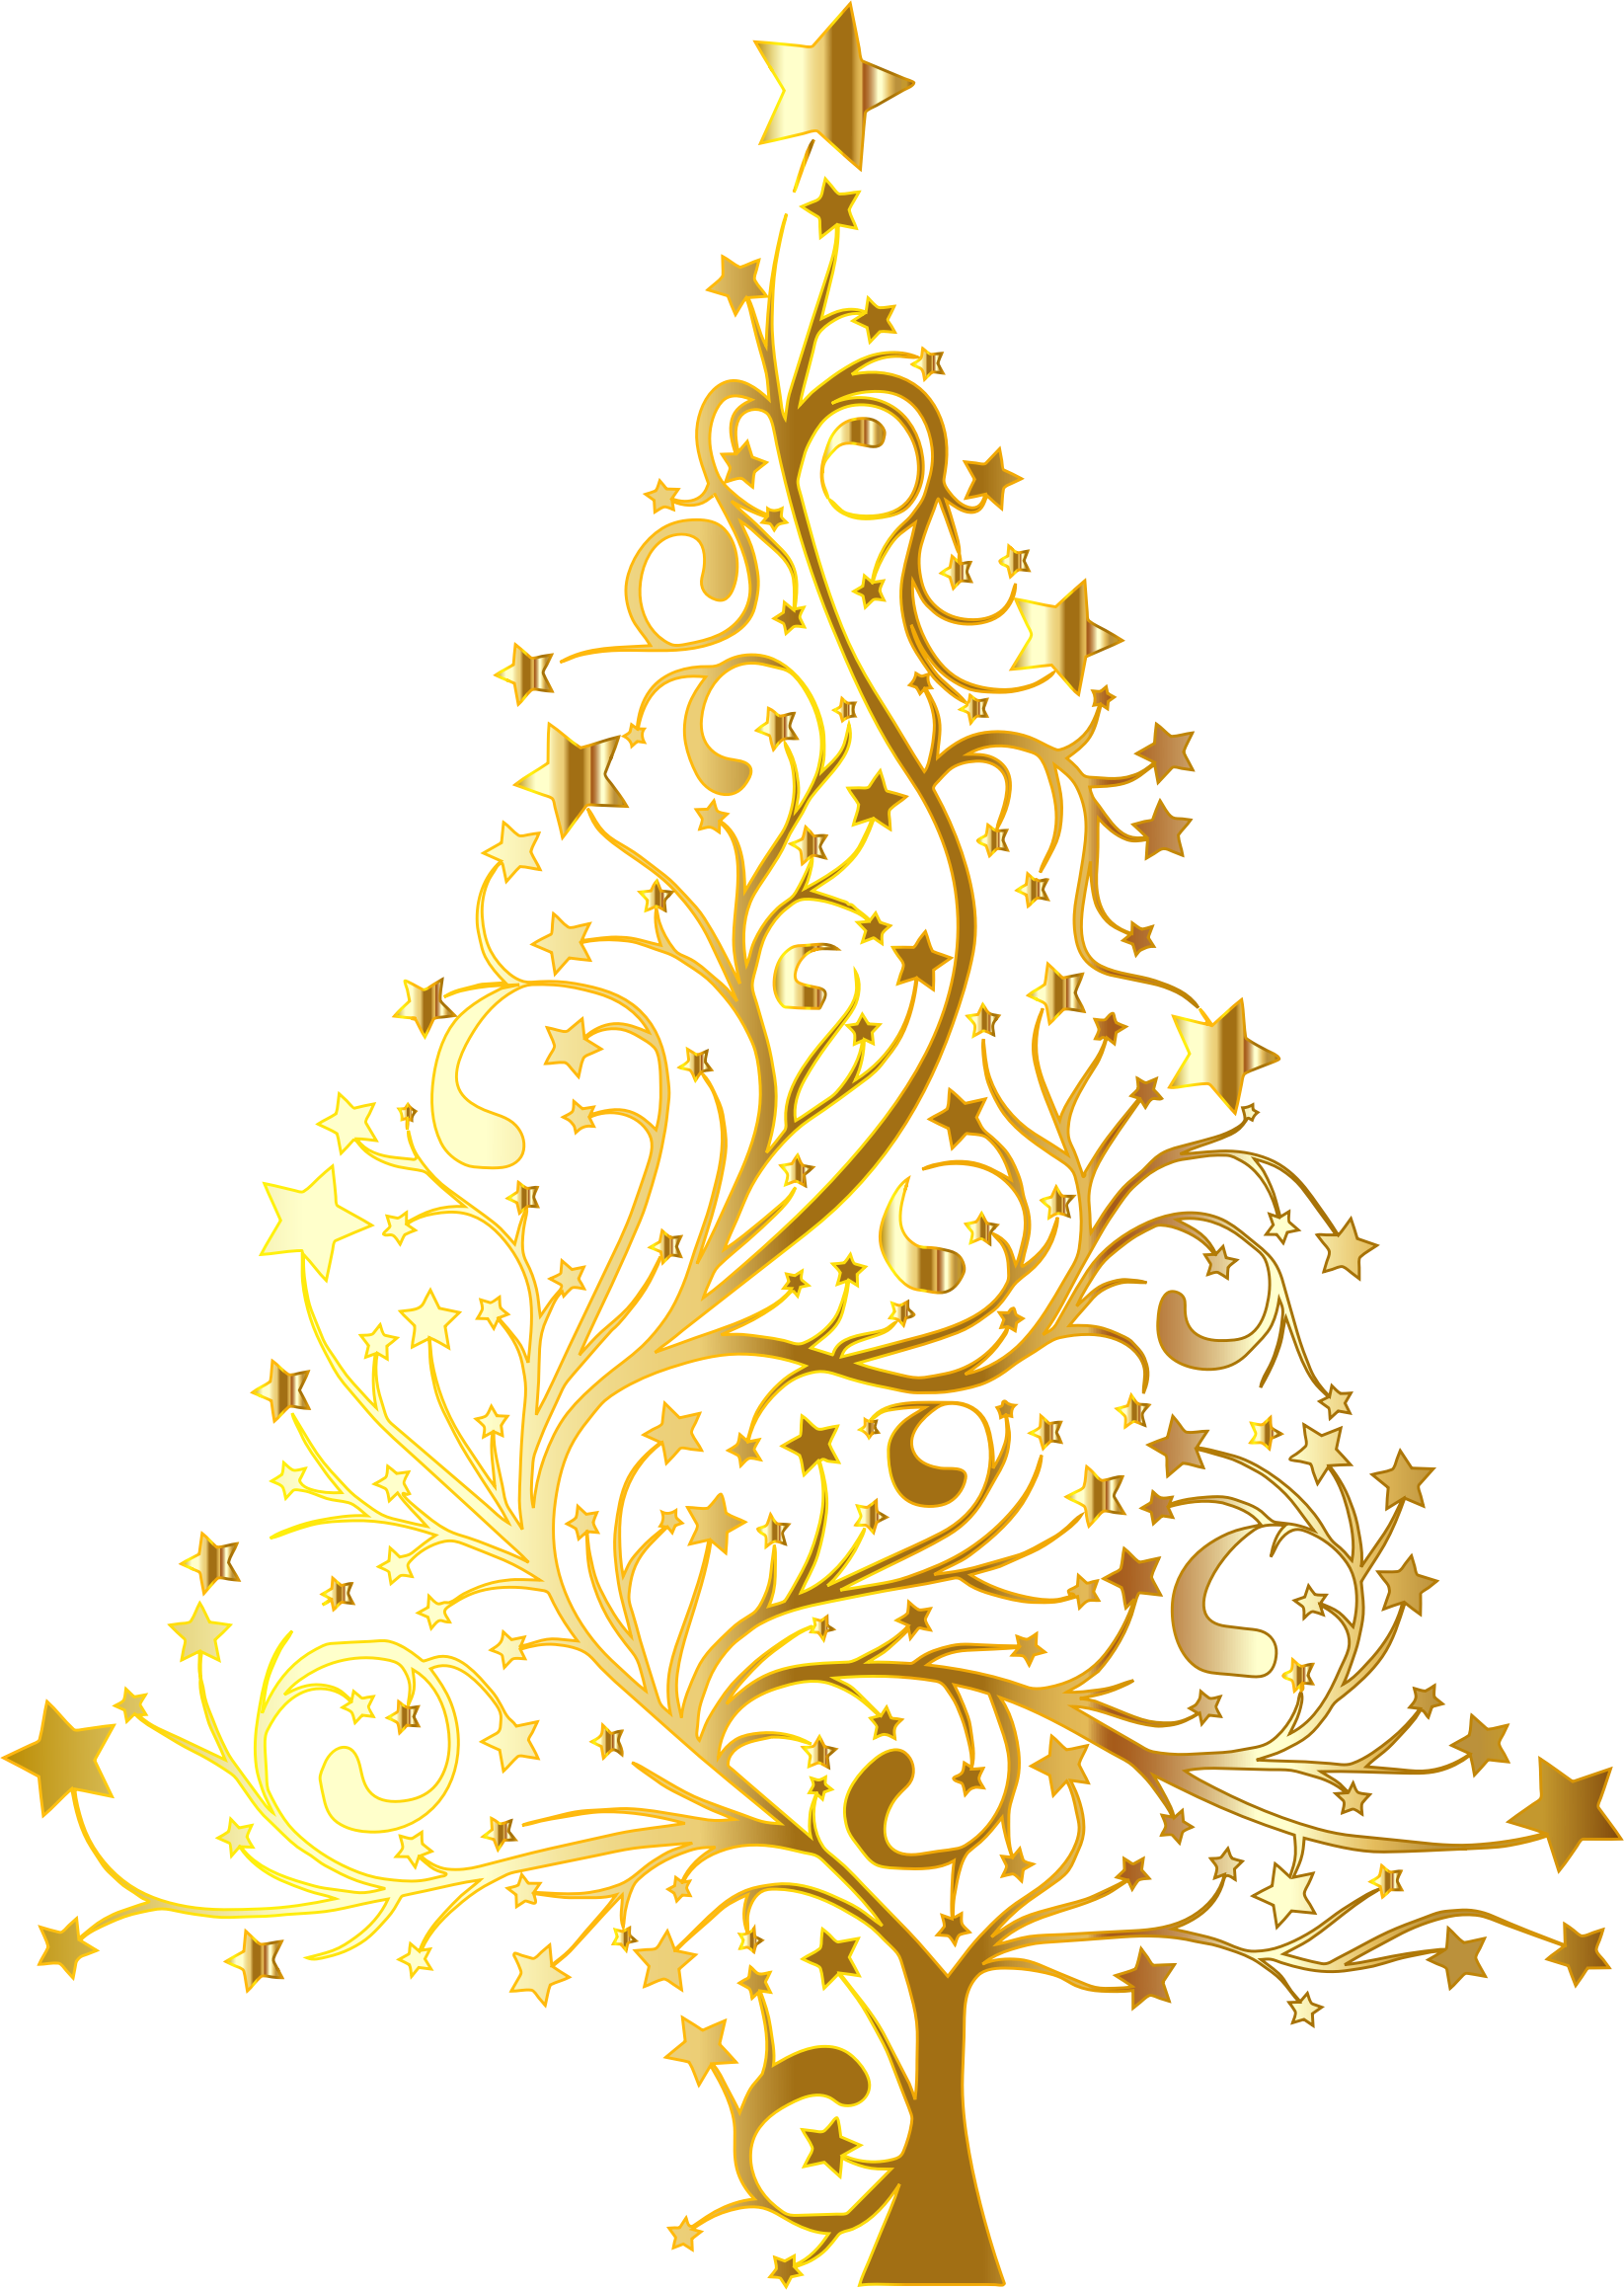 Starry Christmas Tree Gold No Background by GDJ